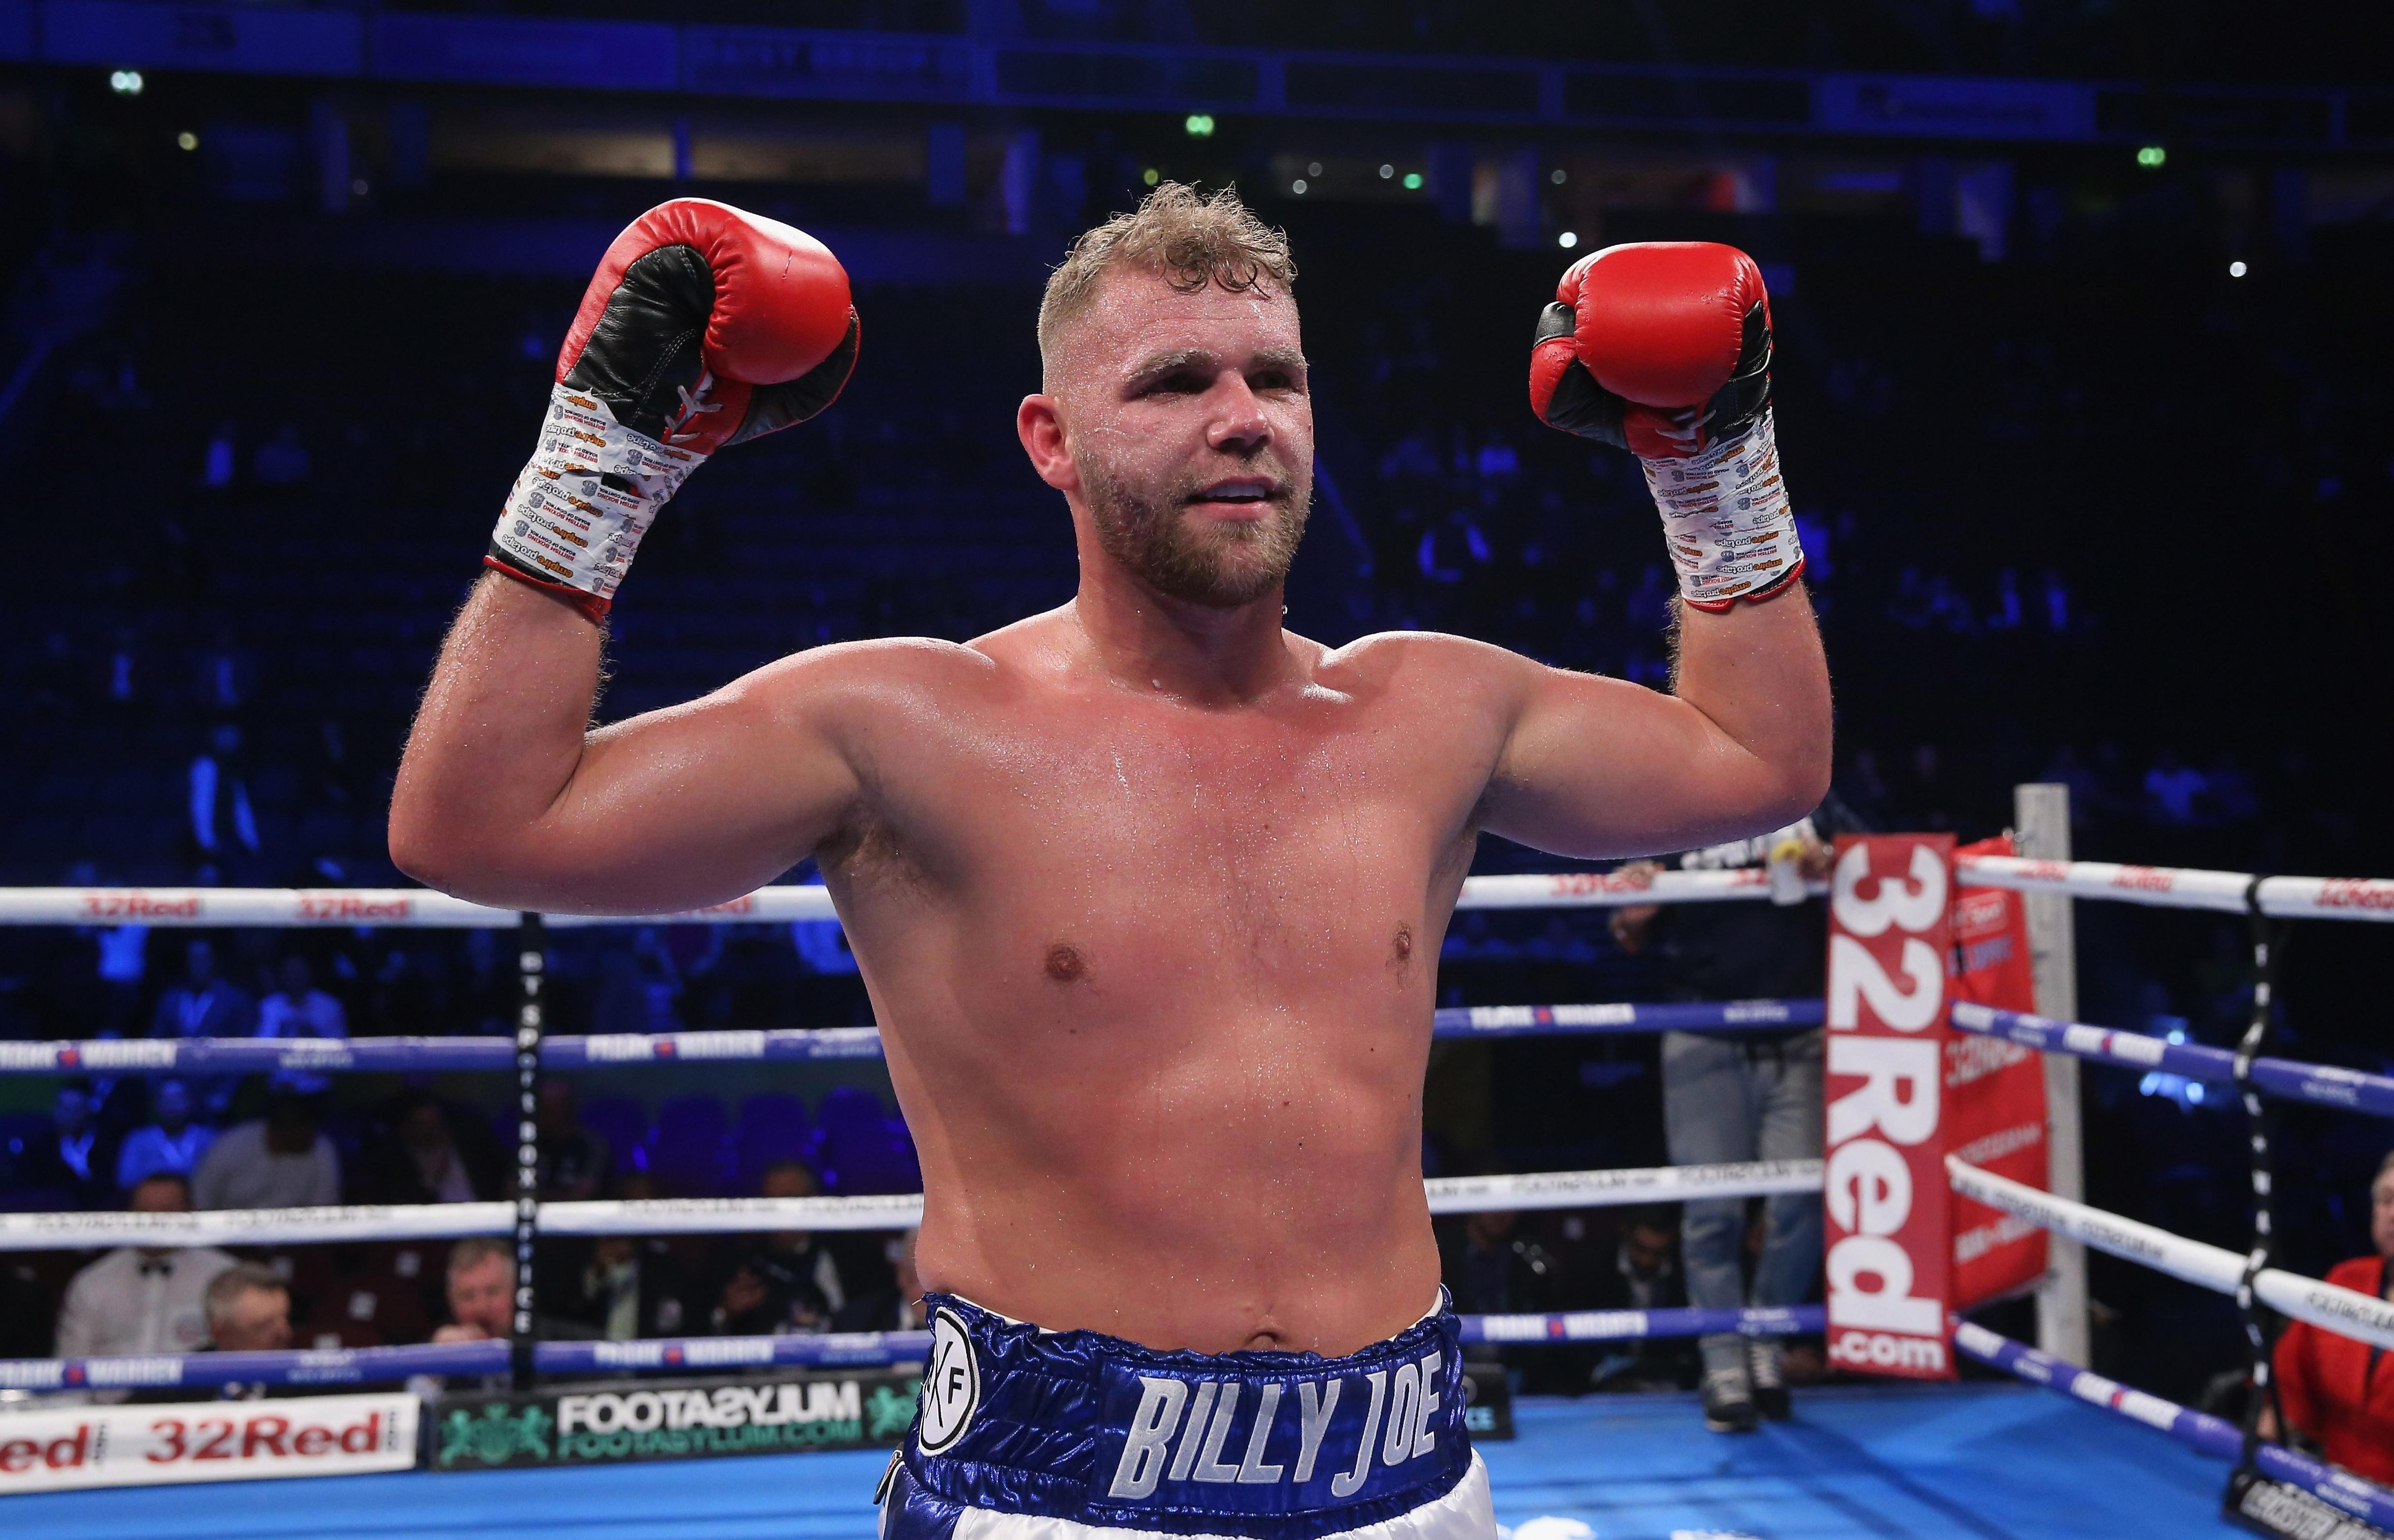 Billy Joe Saunders was out of shape and out of sorts but tool the fight for Denver